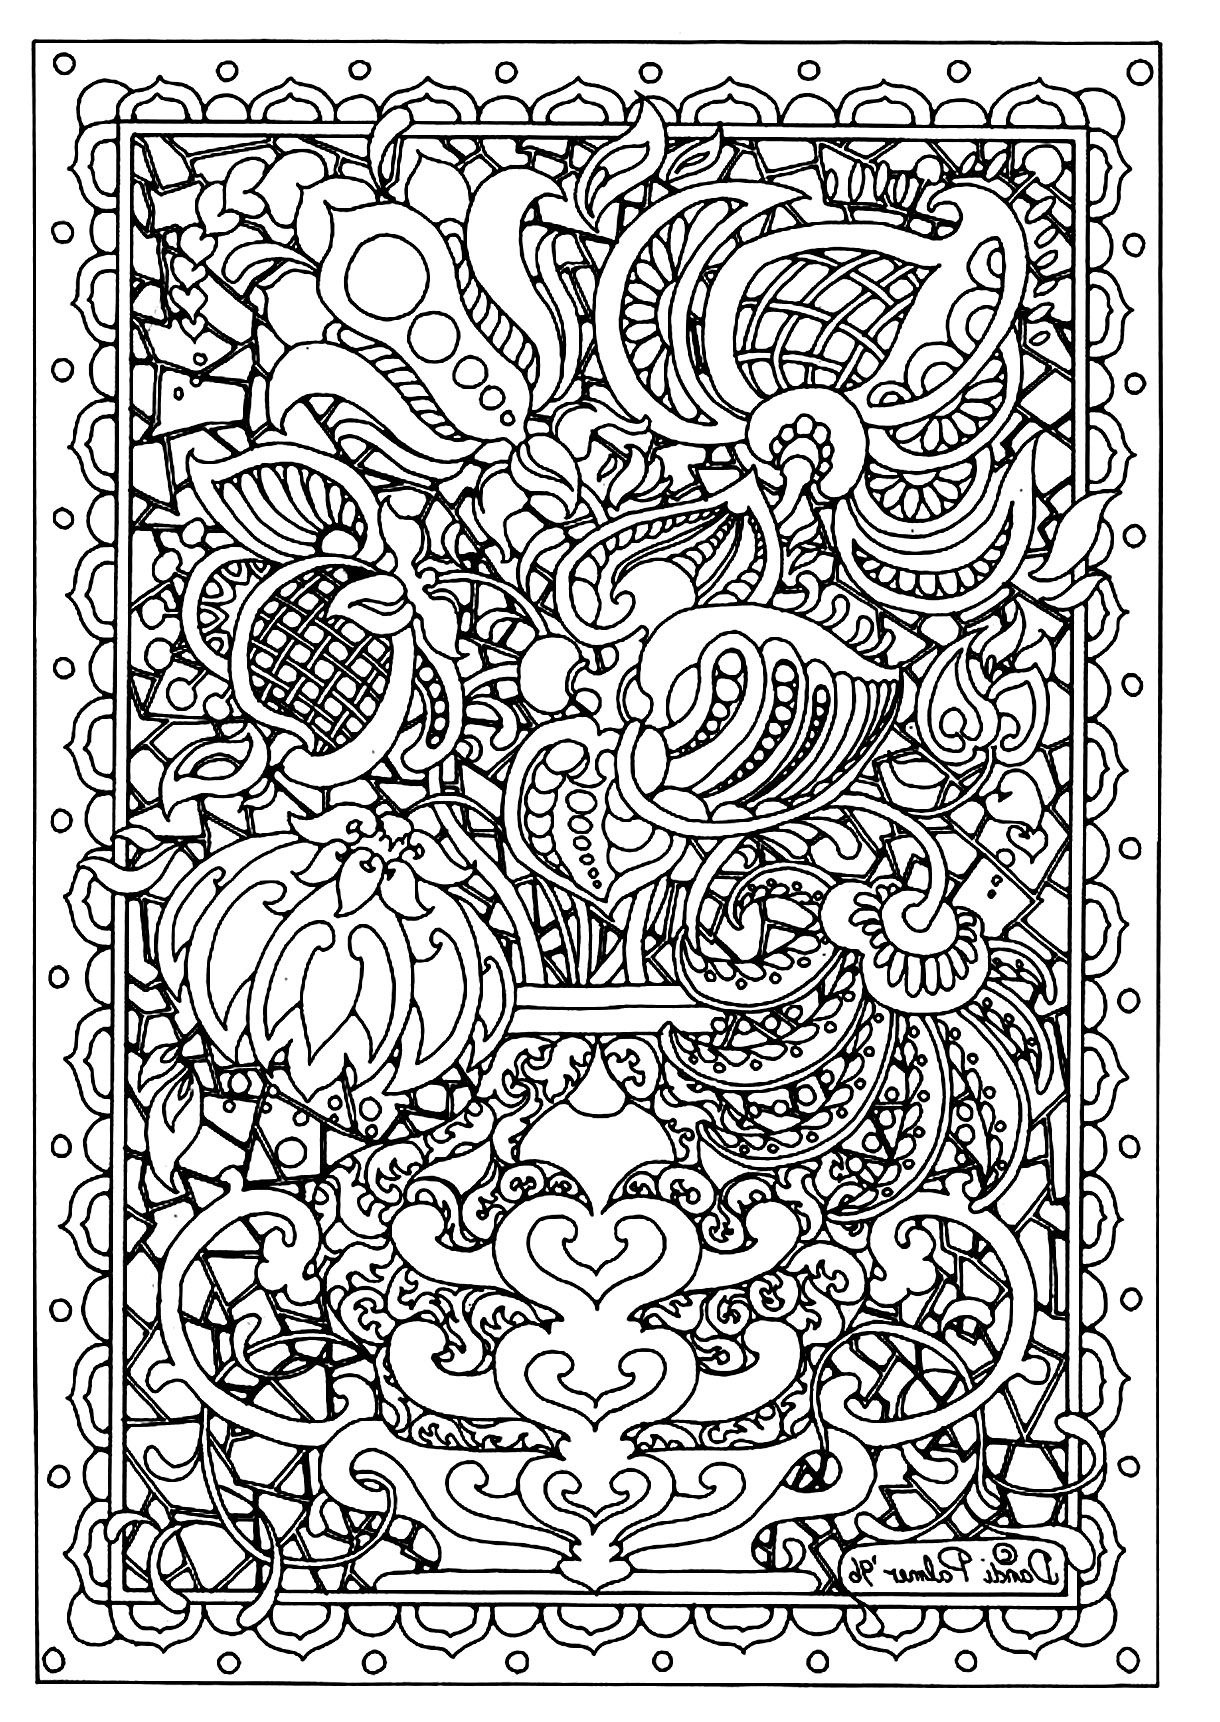 Flower Difficult Flowers Vegetation Coloring Pages For Adults